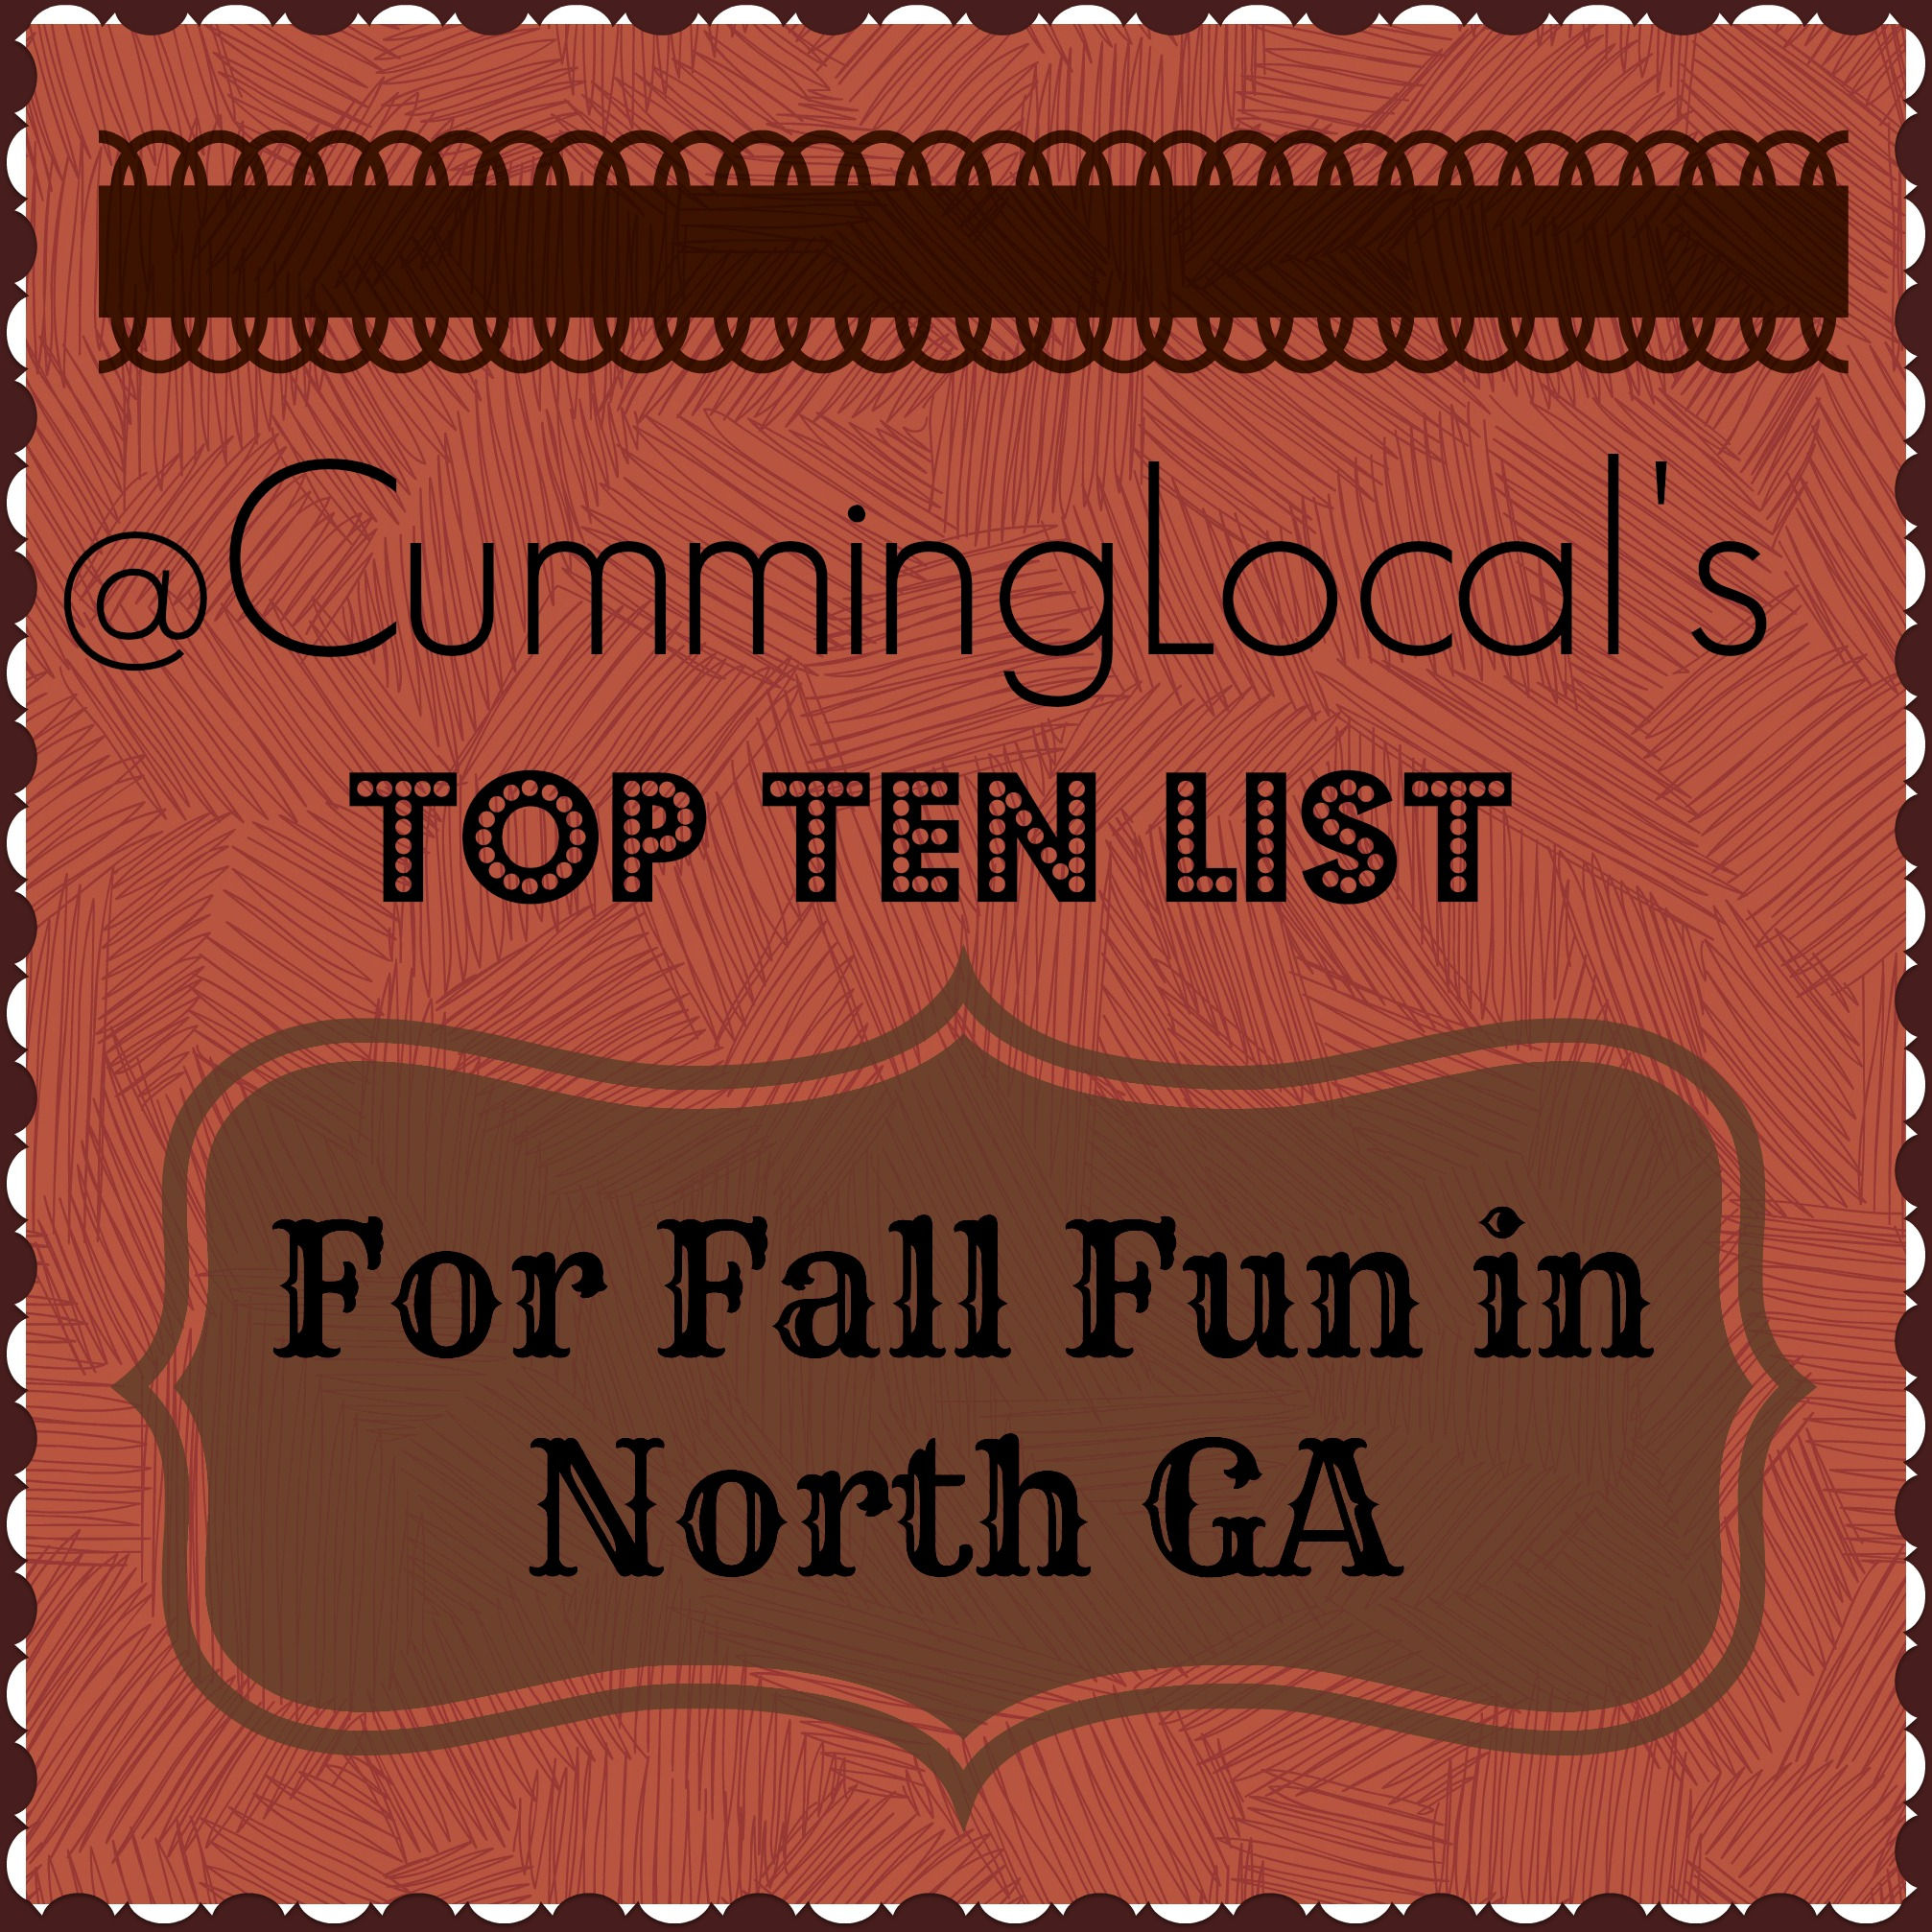 Cumming Local's Top Ten List for Fall Fun in North GA